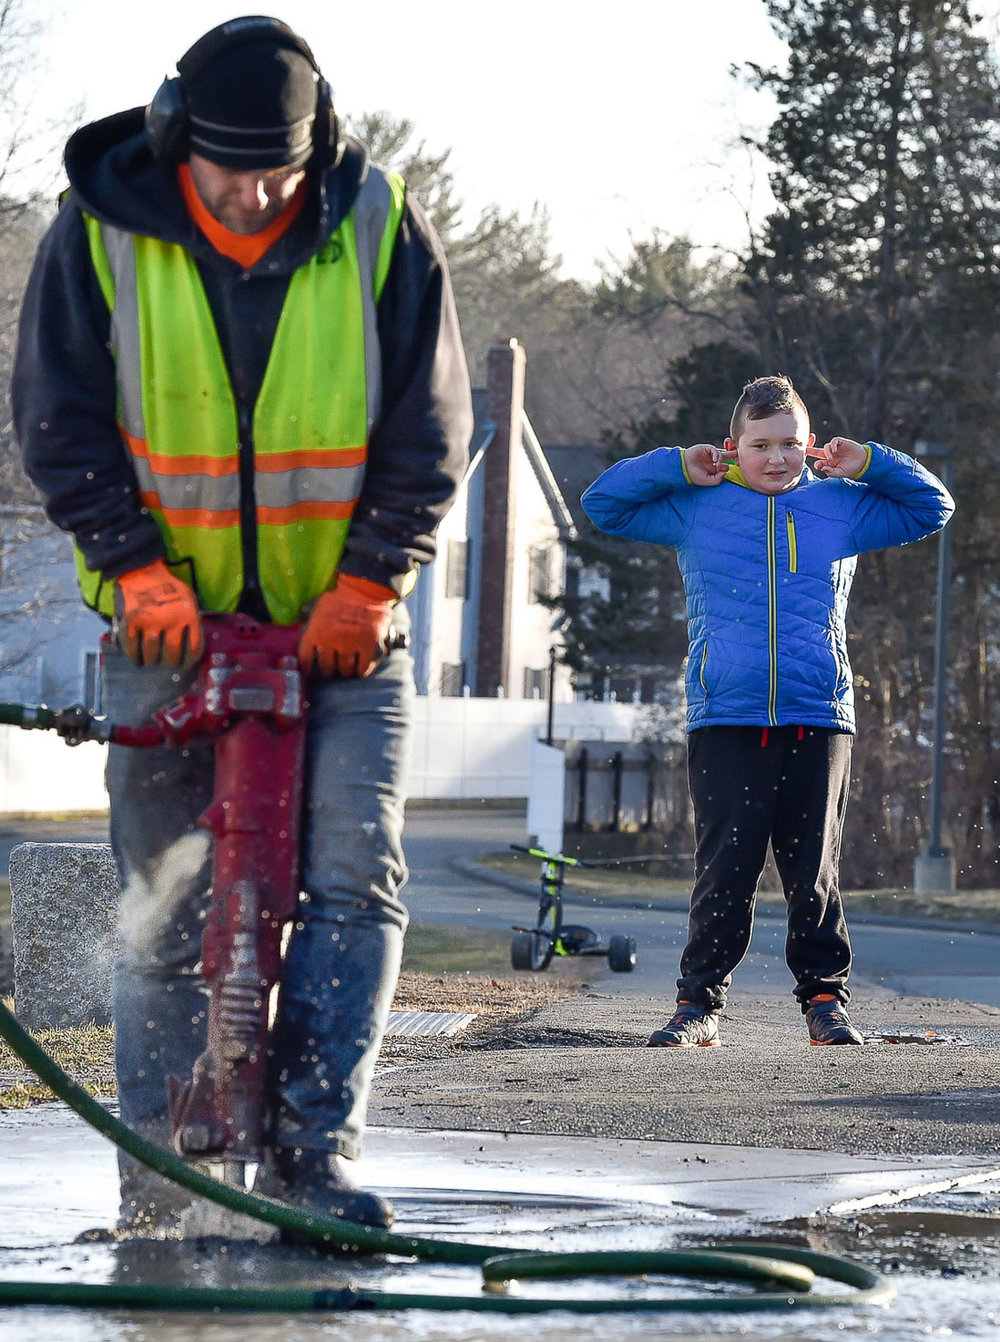 First Place Spot News:  A young boys blocks his ears as an Ipswich Water Department worker uses a jackhammer to break apart the pavement after a water-main break on High Street near Rosewood Drive on Monday, March 5, 2018. [Wicked Local Staff Photo / David Sokol]